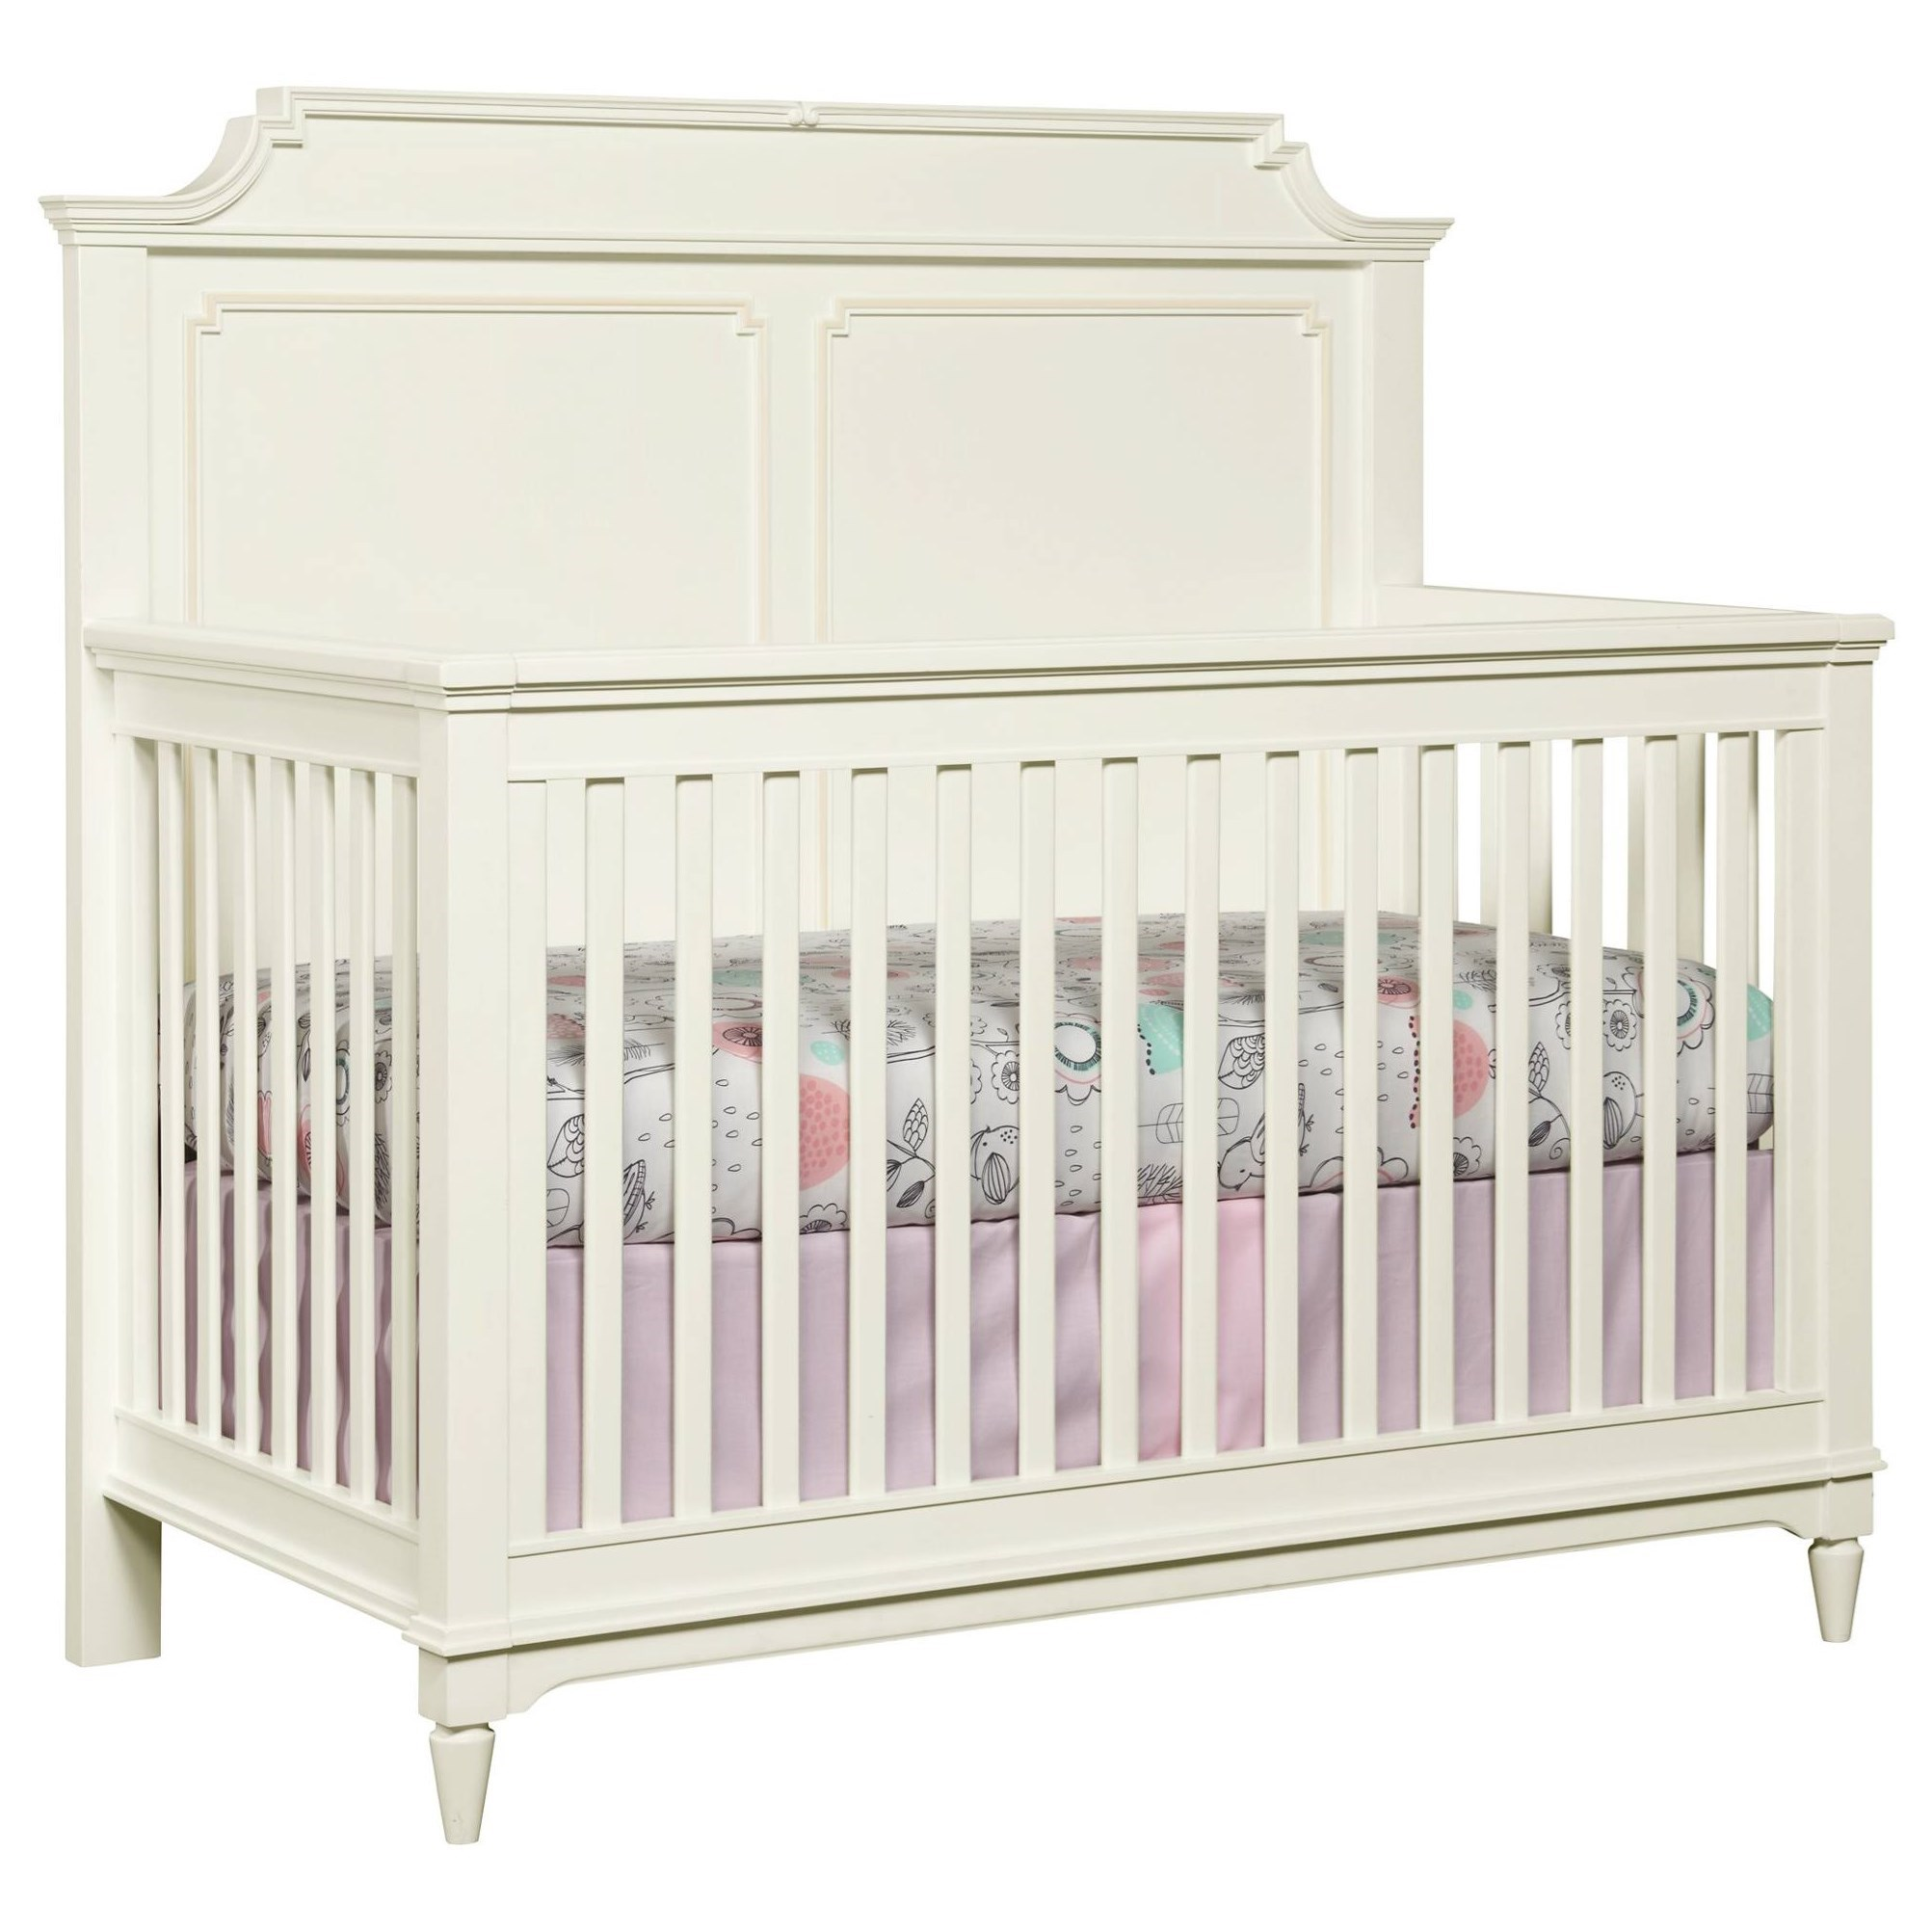 Stone & Leigh Furniture Clementine Court Built To Grow Crib - Item Number: 537-23-50